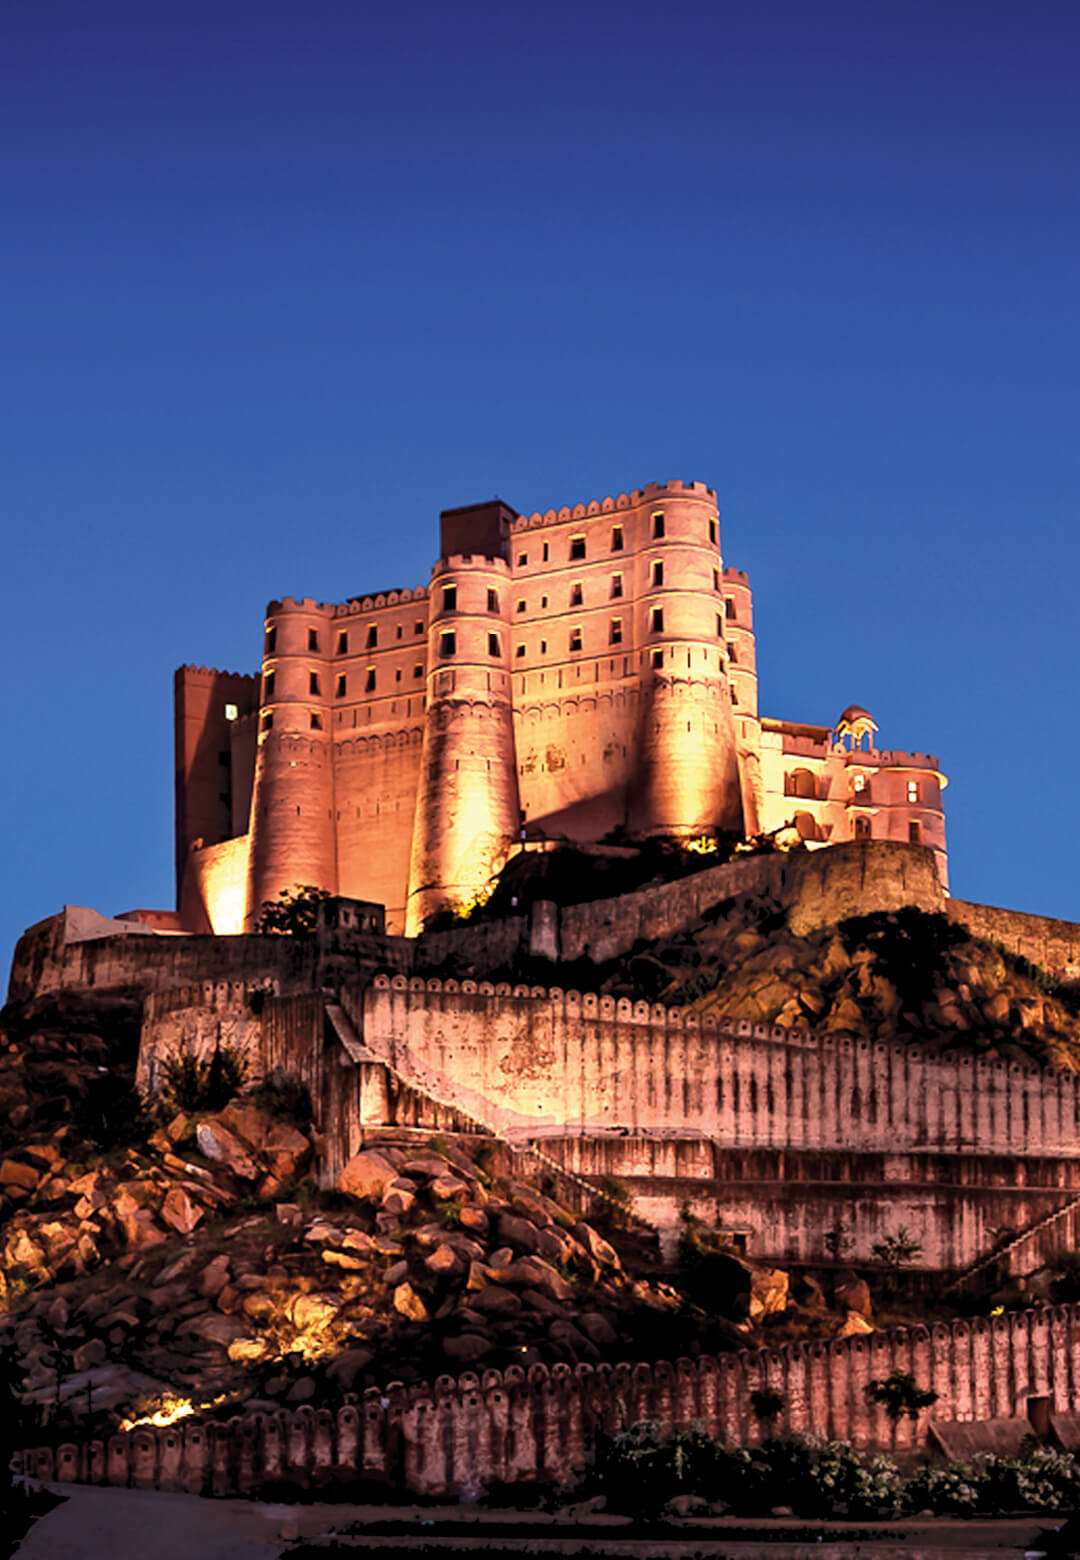 Alila Bishangarh Fort | Alila Bishangarh Fort |Sthapatya Architects | STIRworld